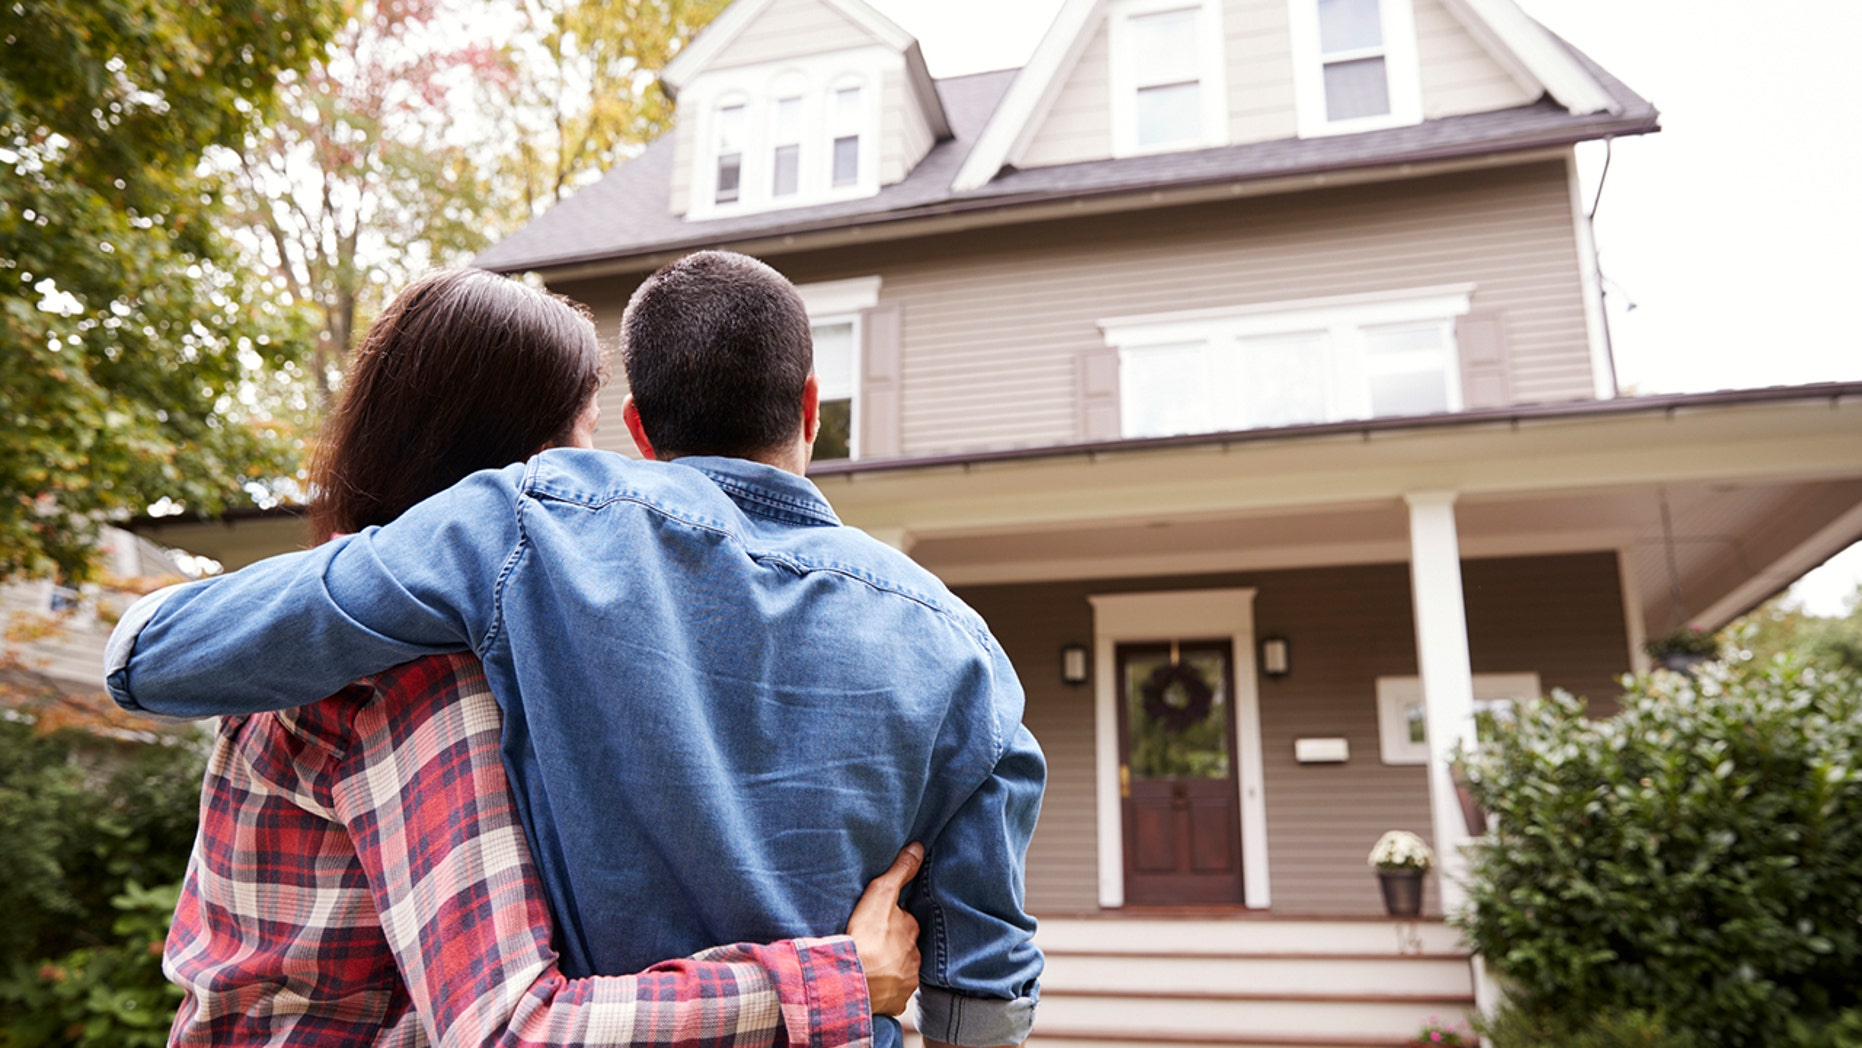 One in ten polled admitted they've given up on ever owning a home.